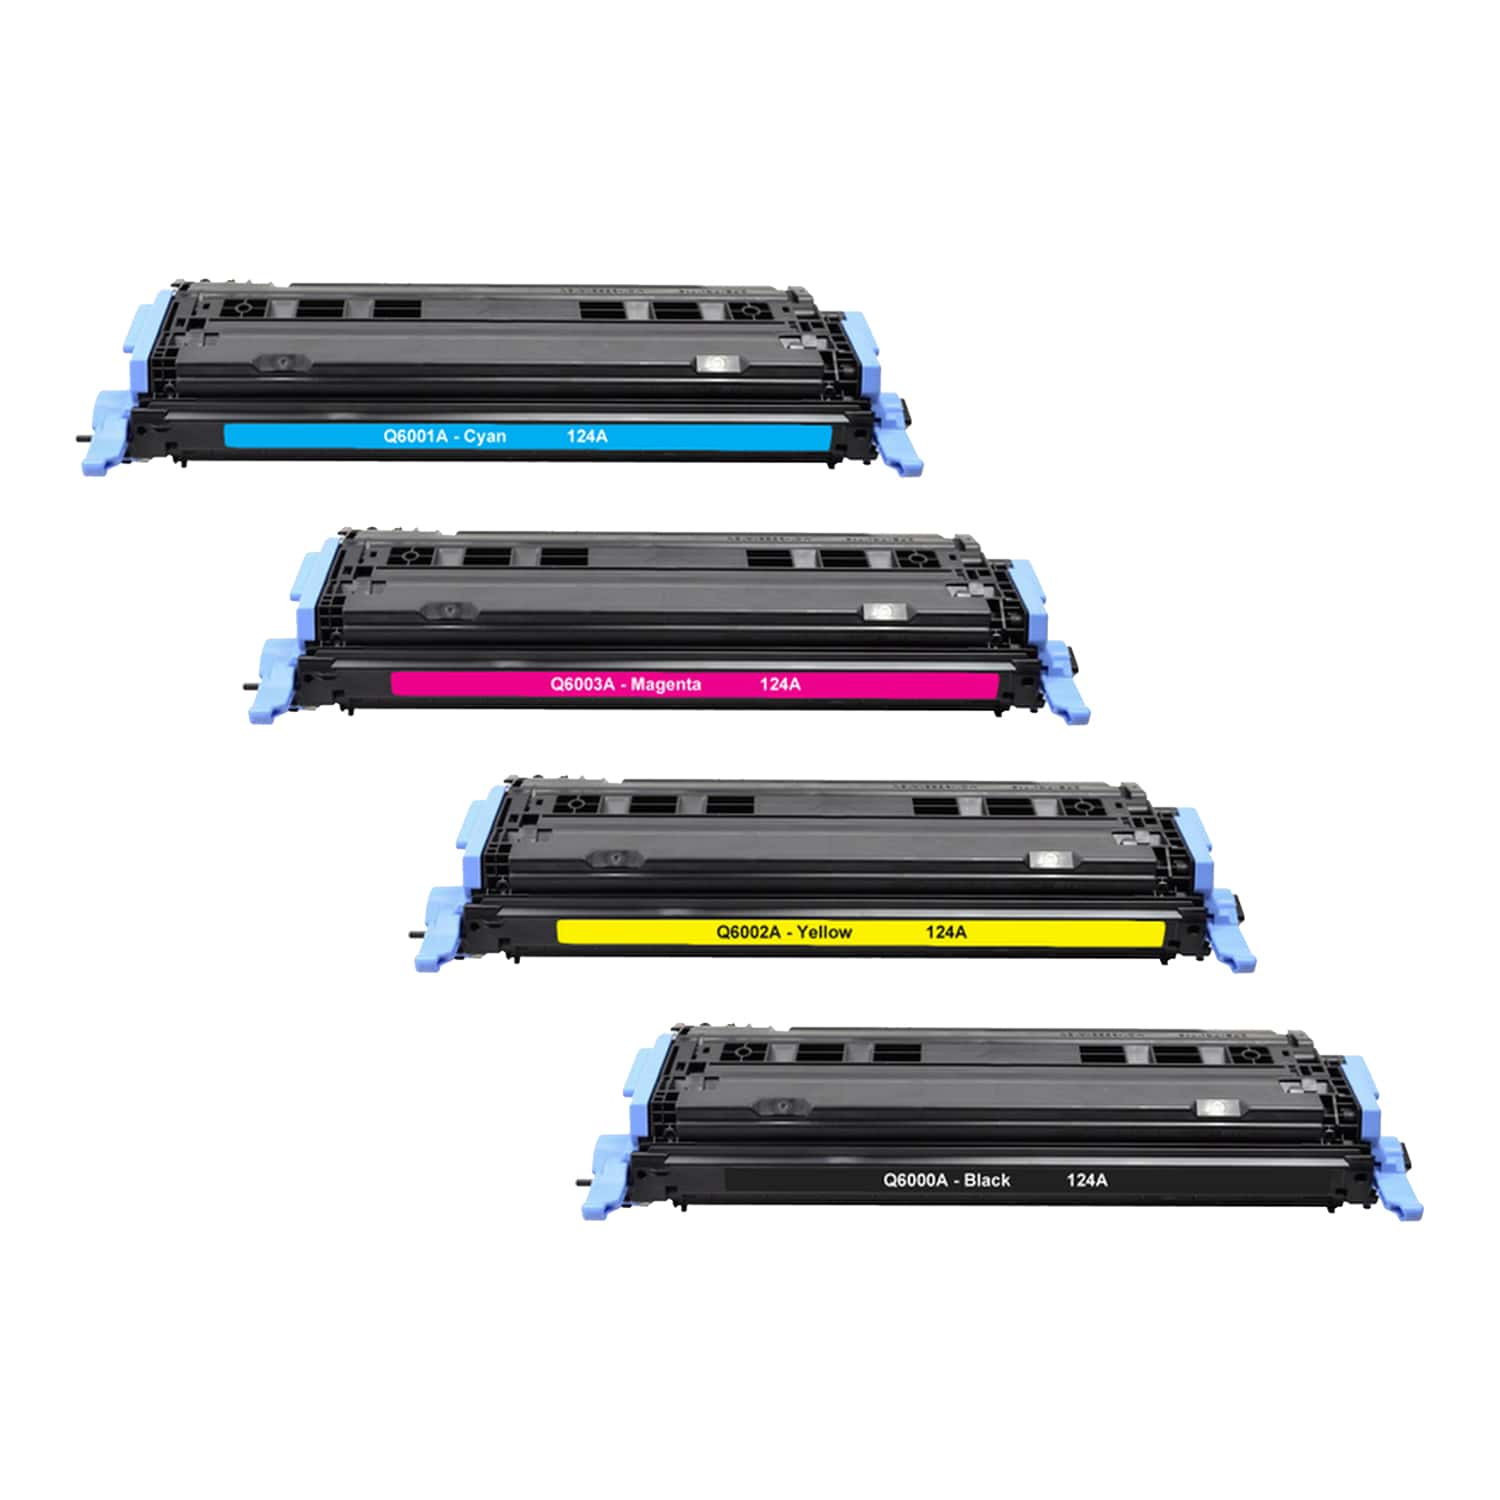 Remanufactured HP 124A Toner Pack - 4 Cartridges